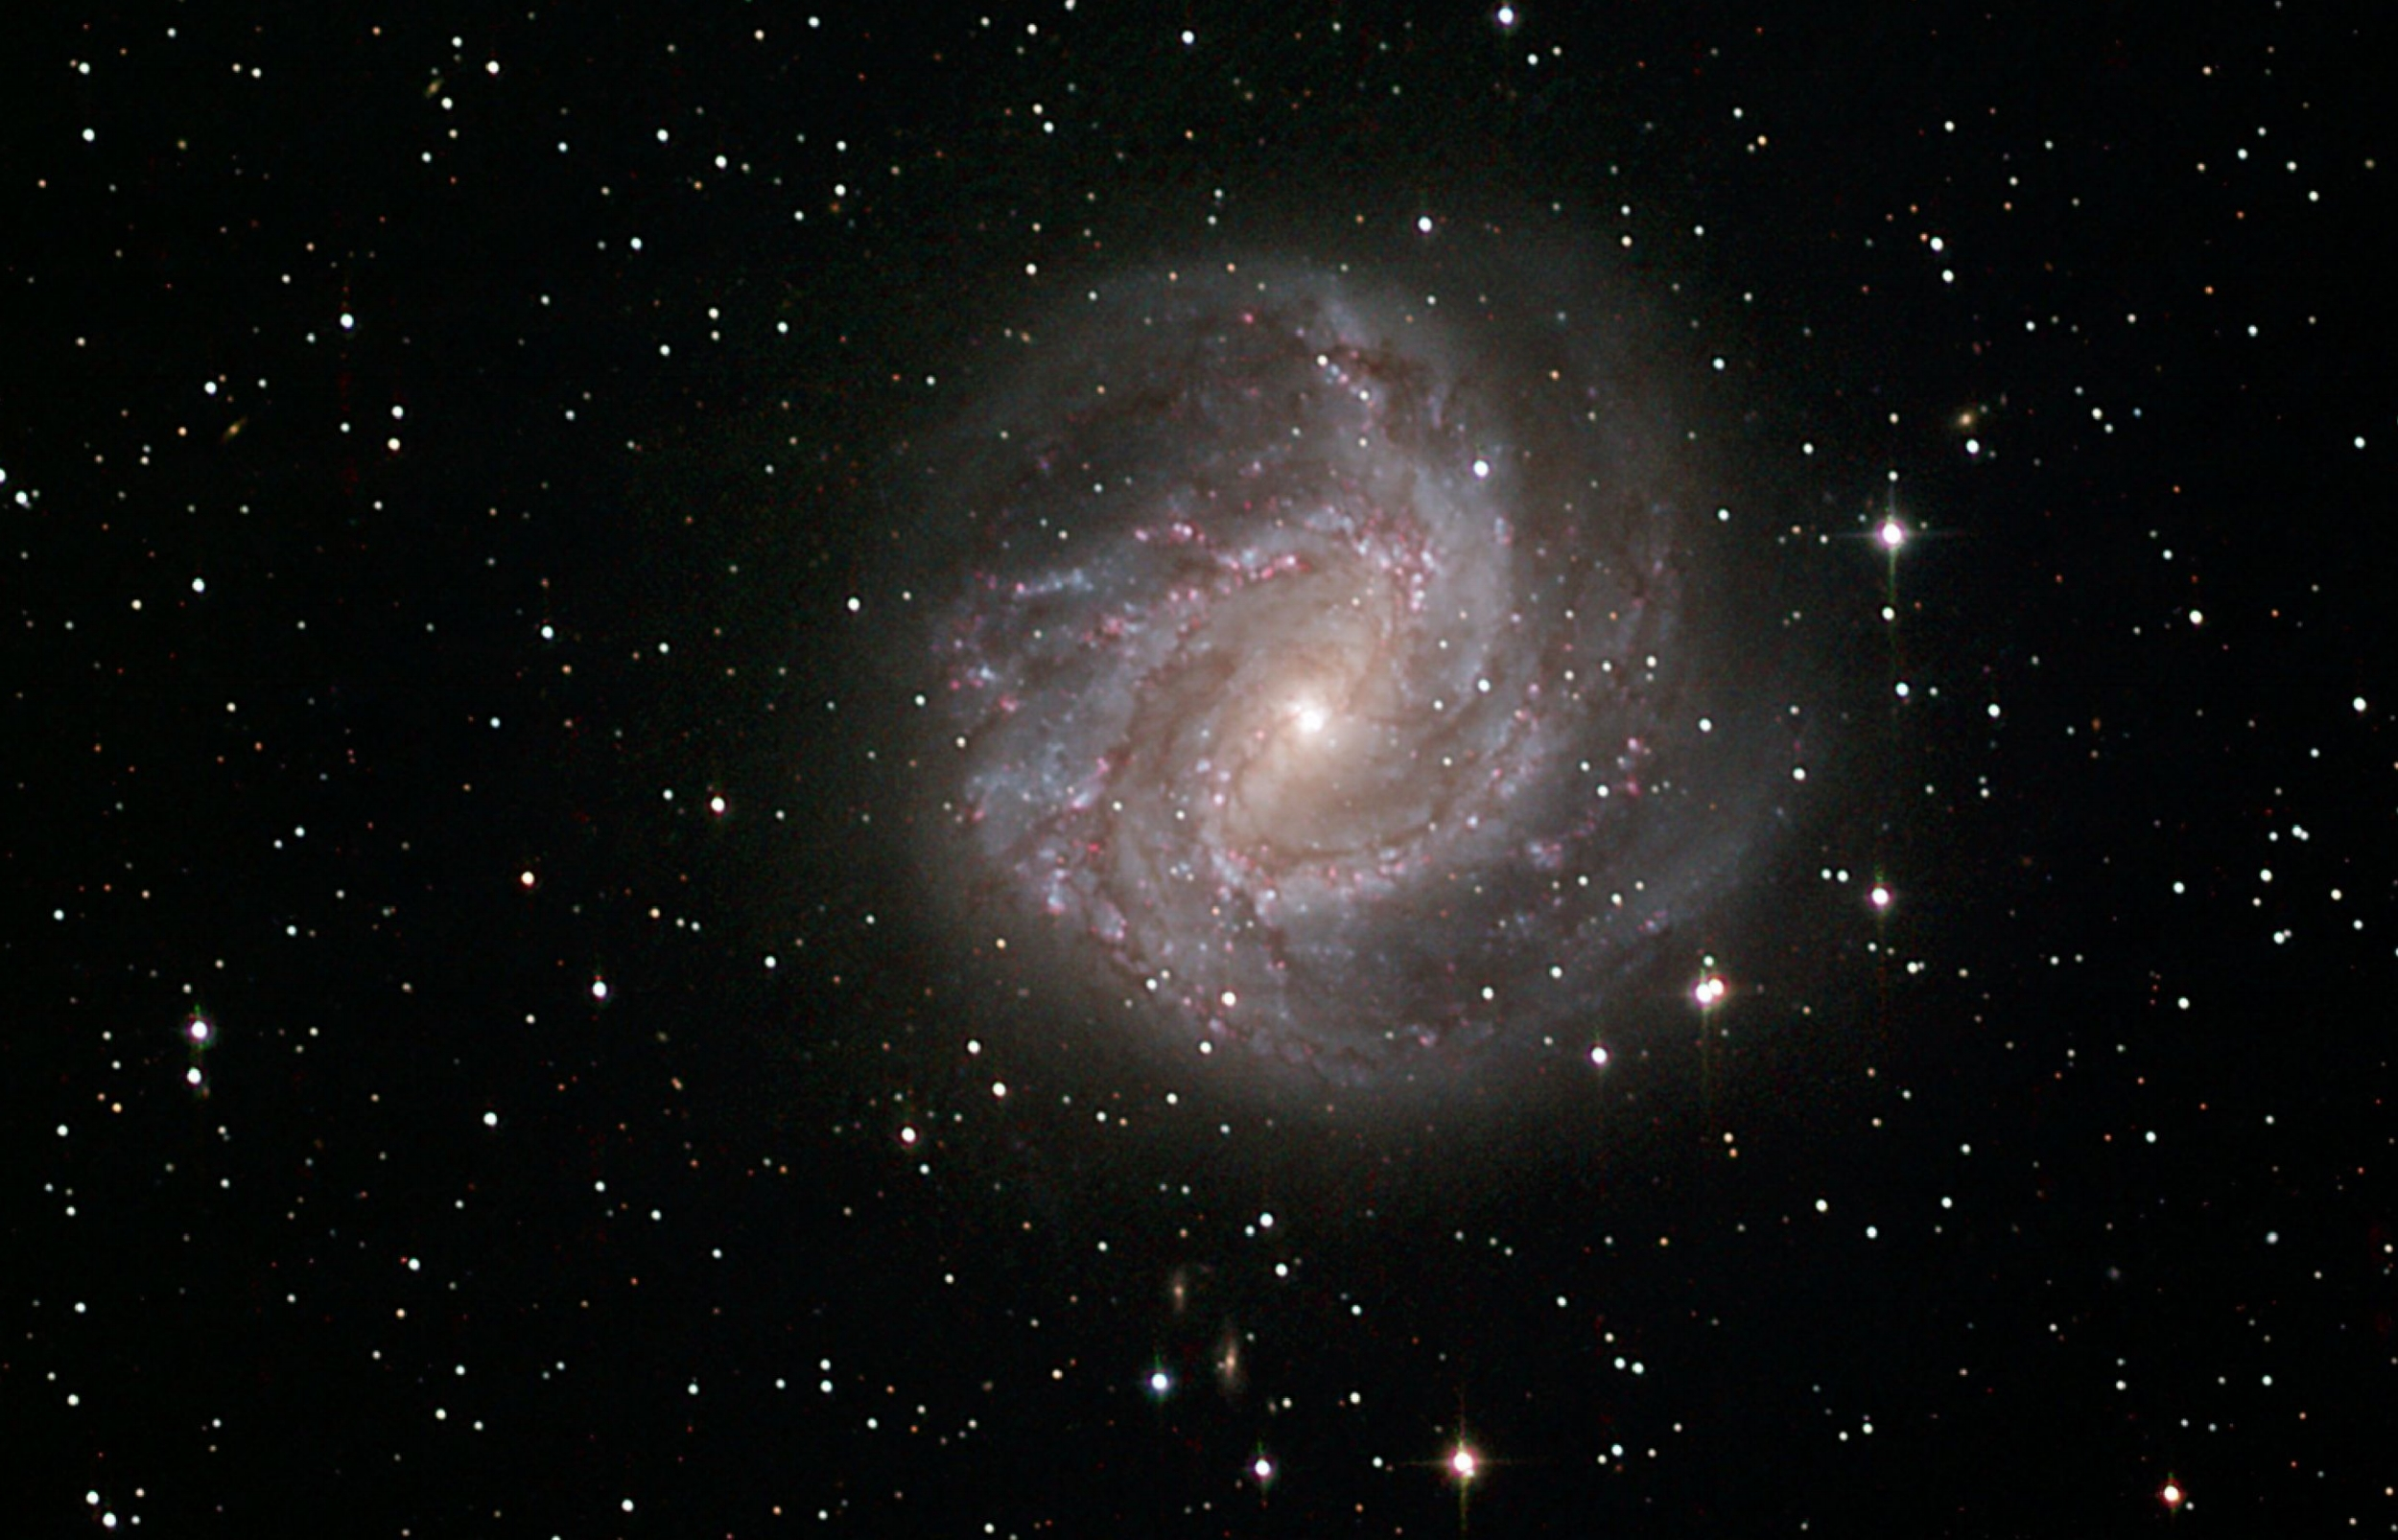 The Southern Pinwheel Galaxy processed by Mladen as part of the Masterclass taken with T31 - LRGB